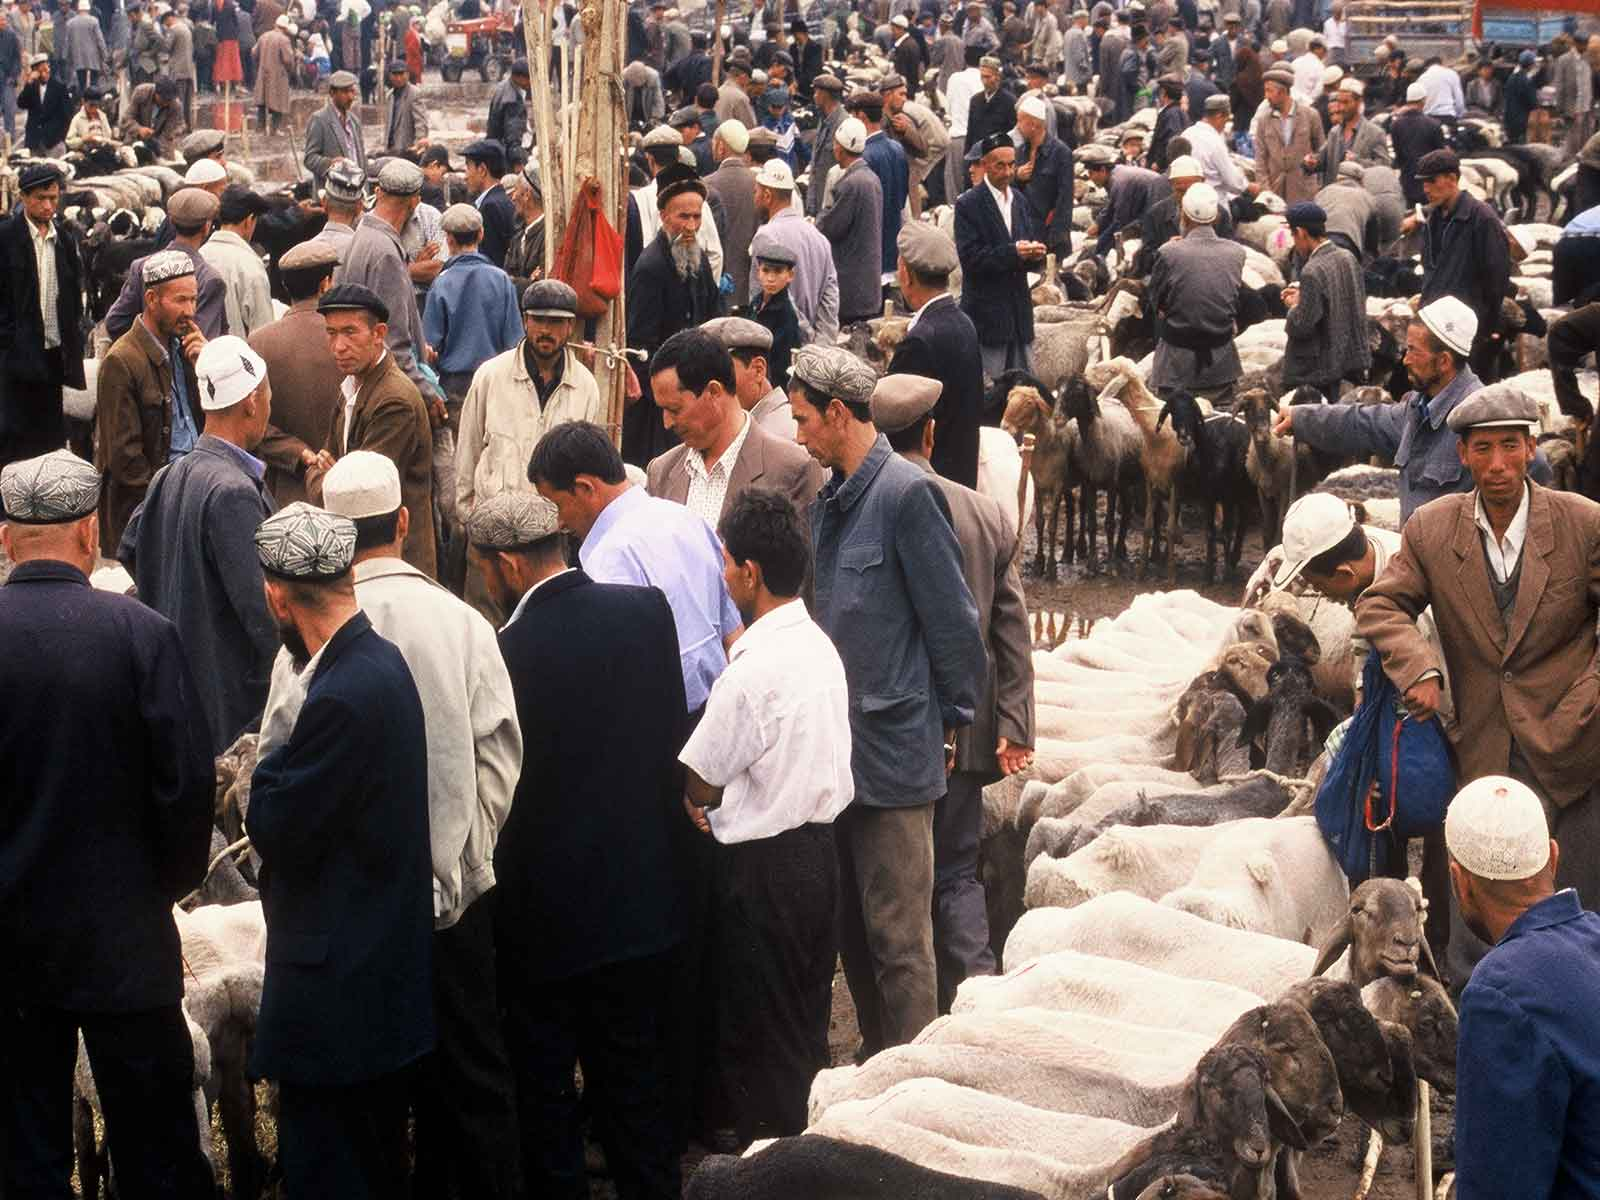 Livestock market - Kashgar Sunday Bazaar - China Silk Road Photo Journal Research - Steven Andrew Martin 2001